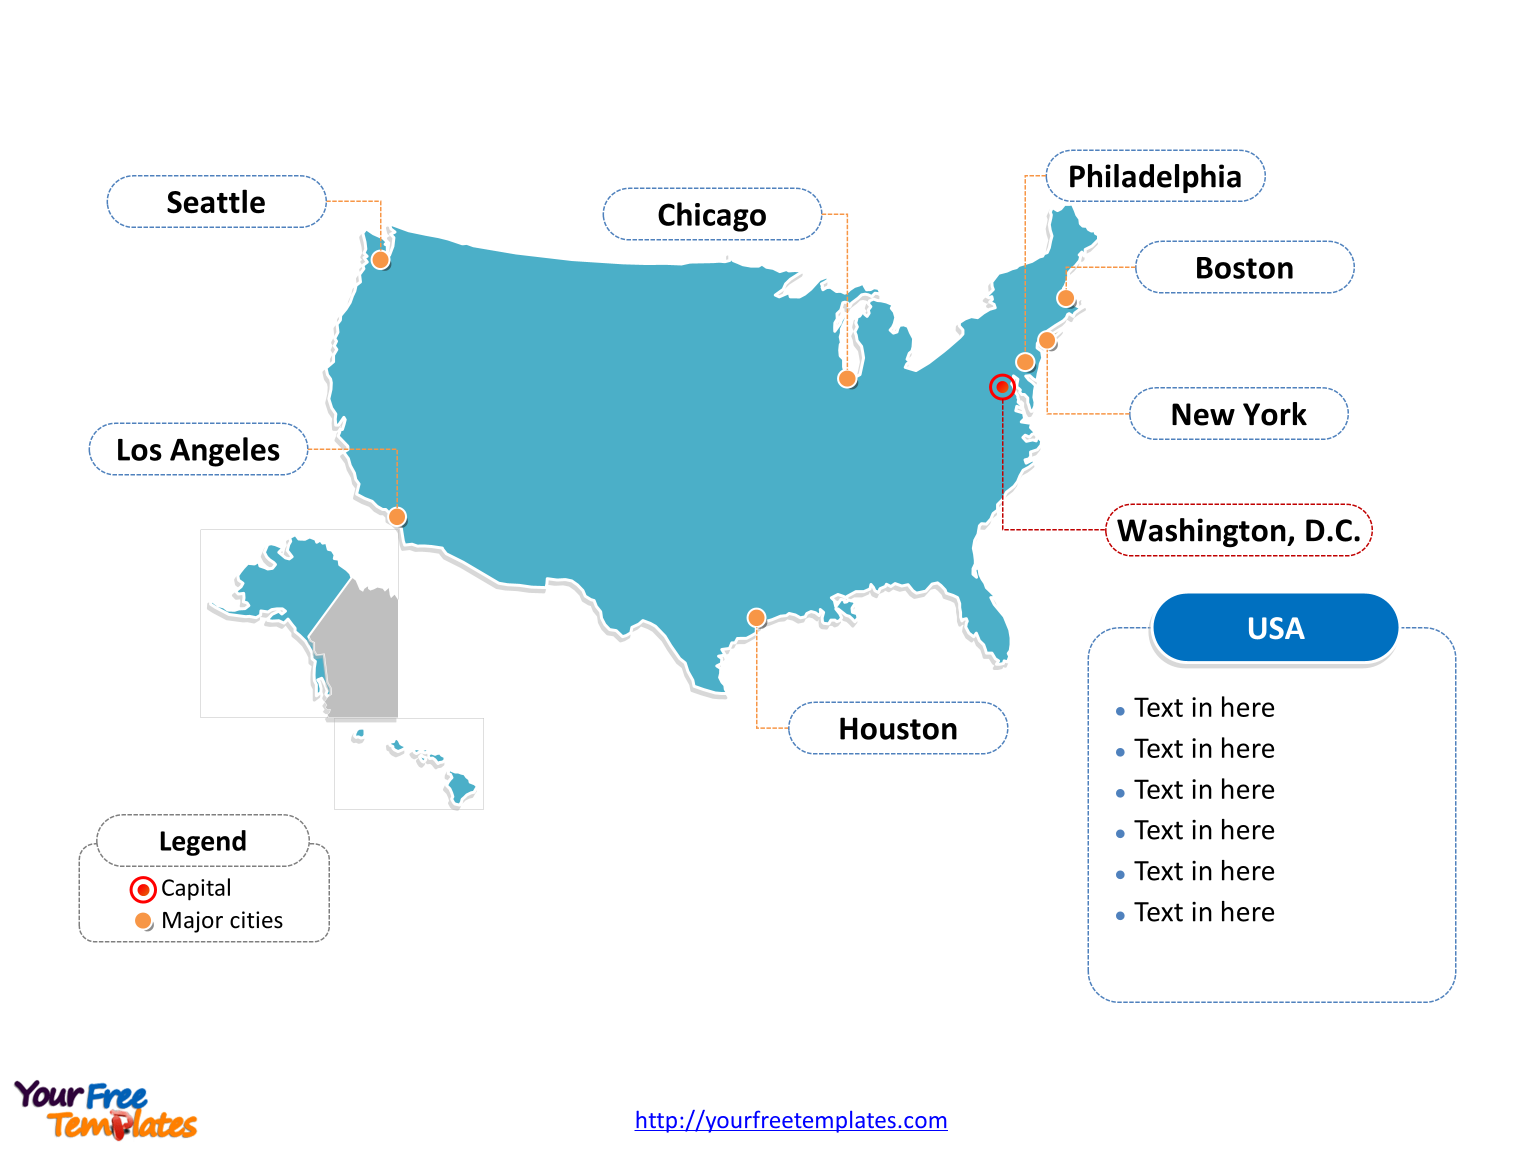 Free USA PowerPoint Map Free PowerPoint Templates - Free us map with states labeled